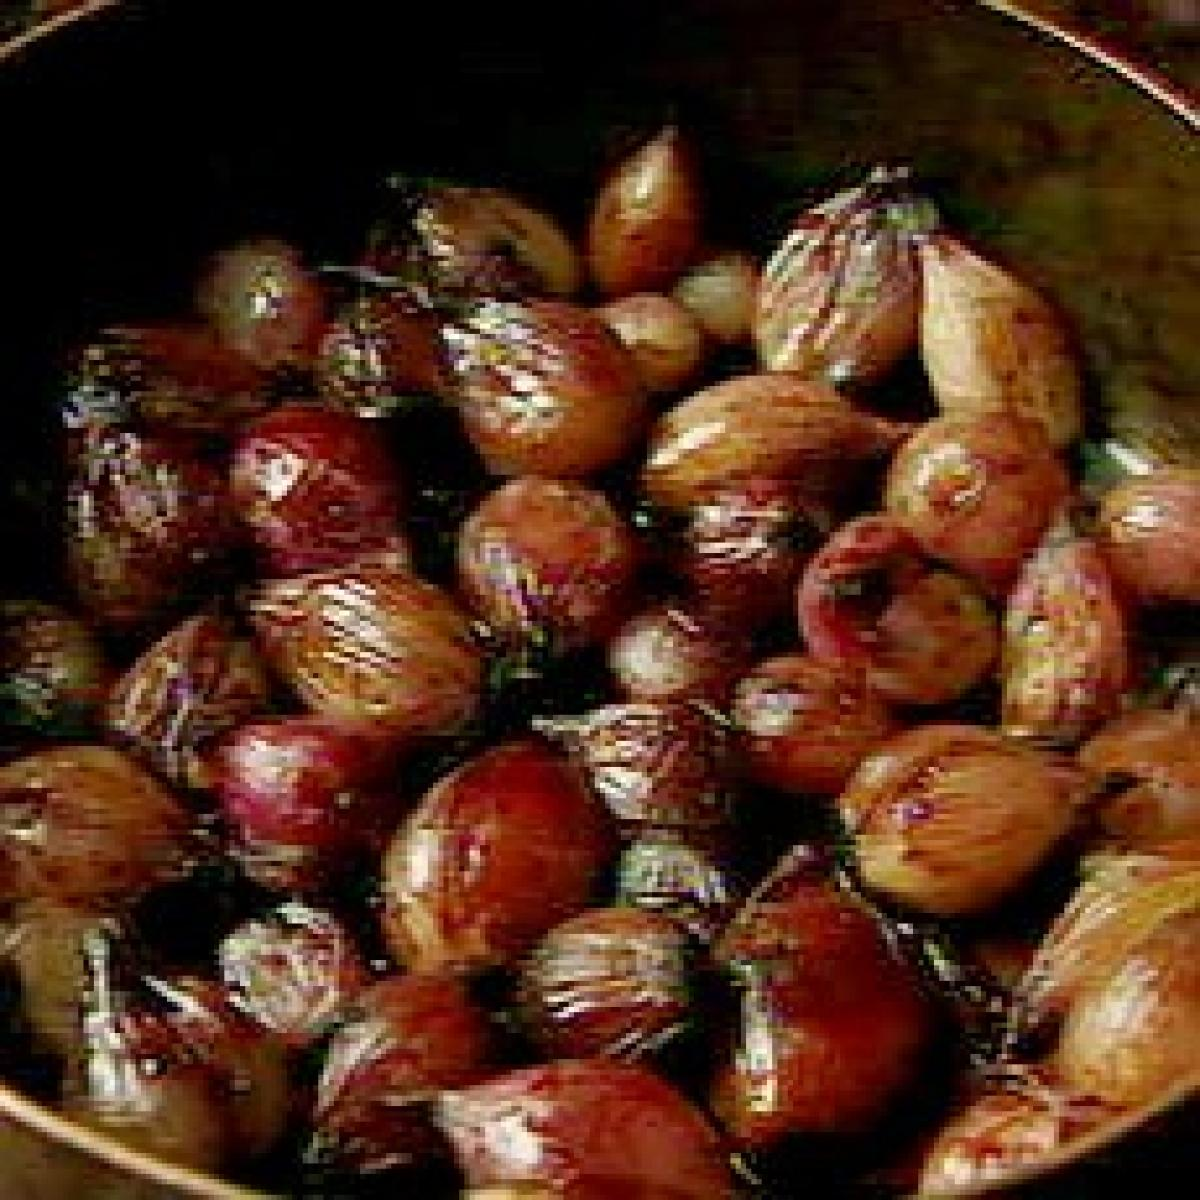 A picture of Delia's Compote of Glazed Shallots recipe